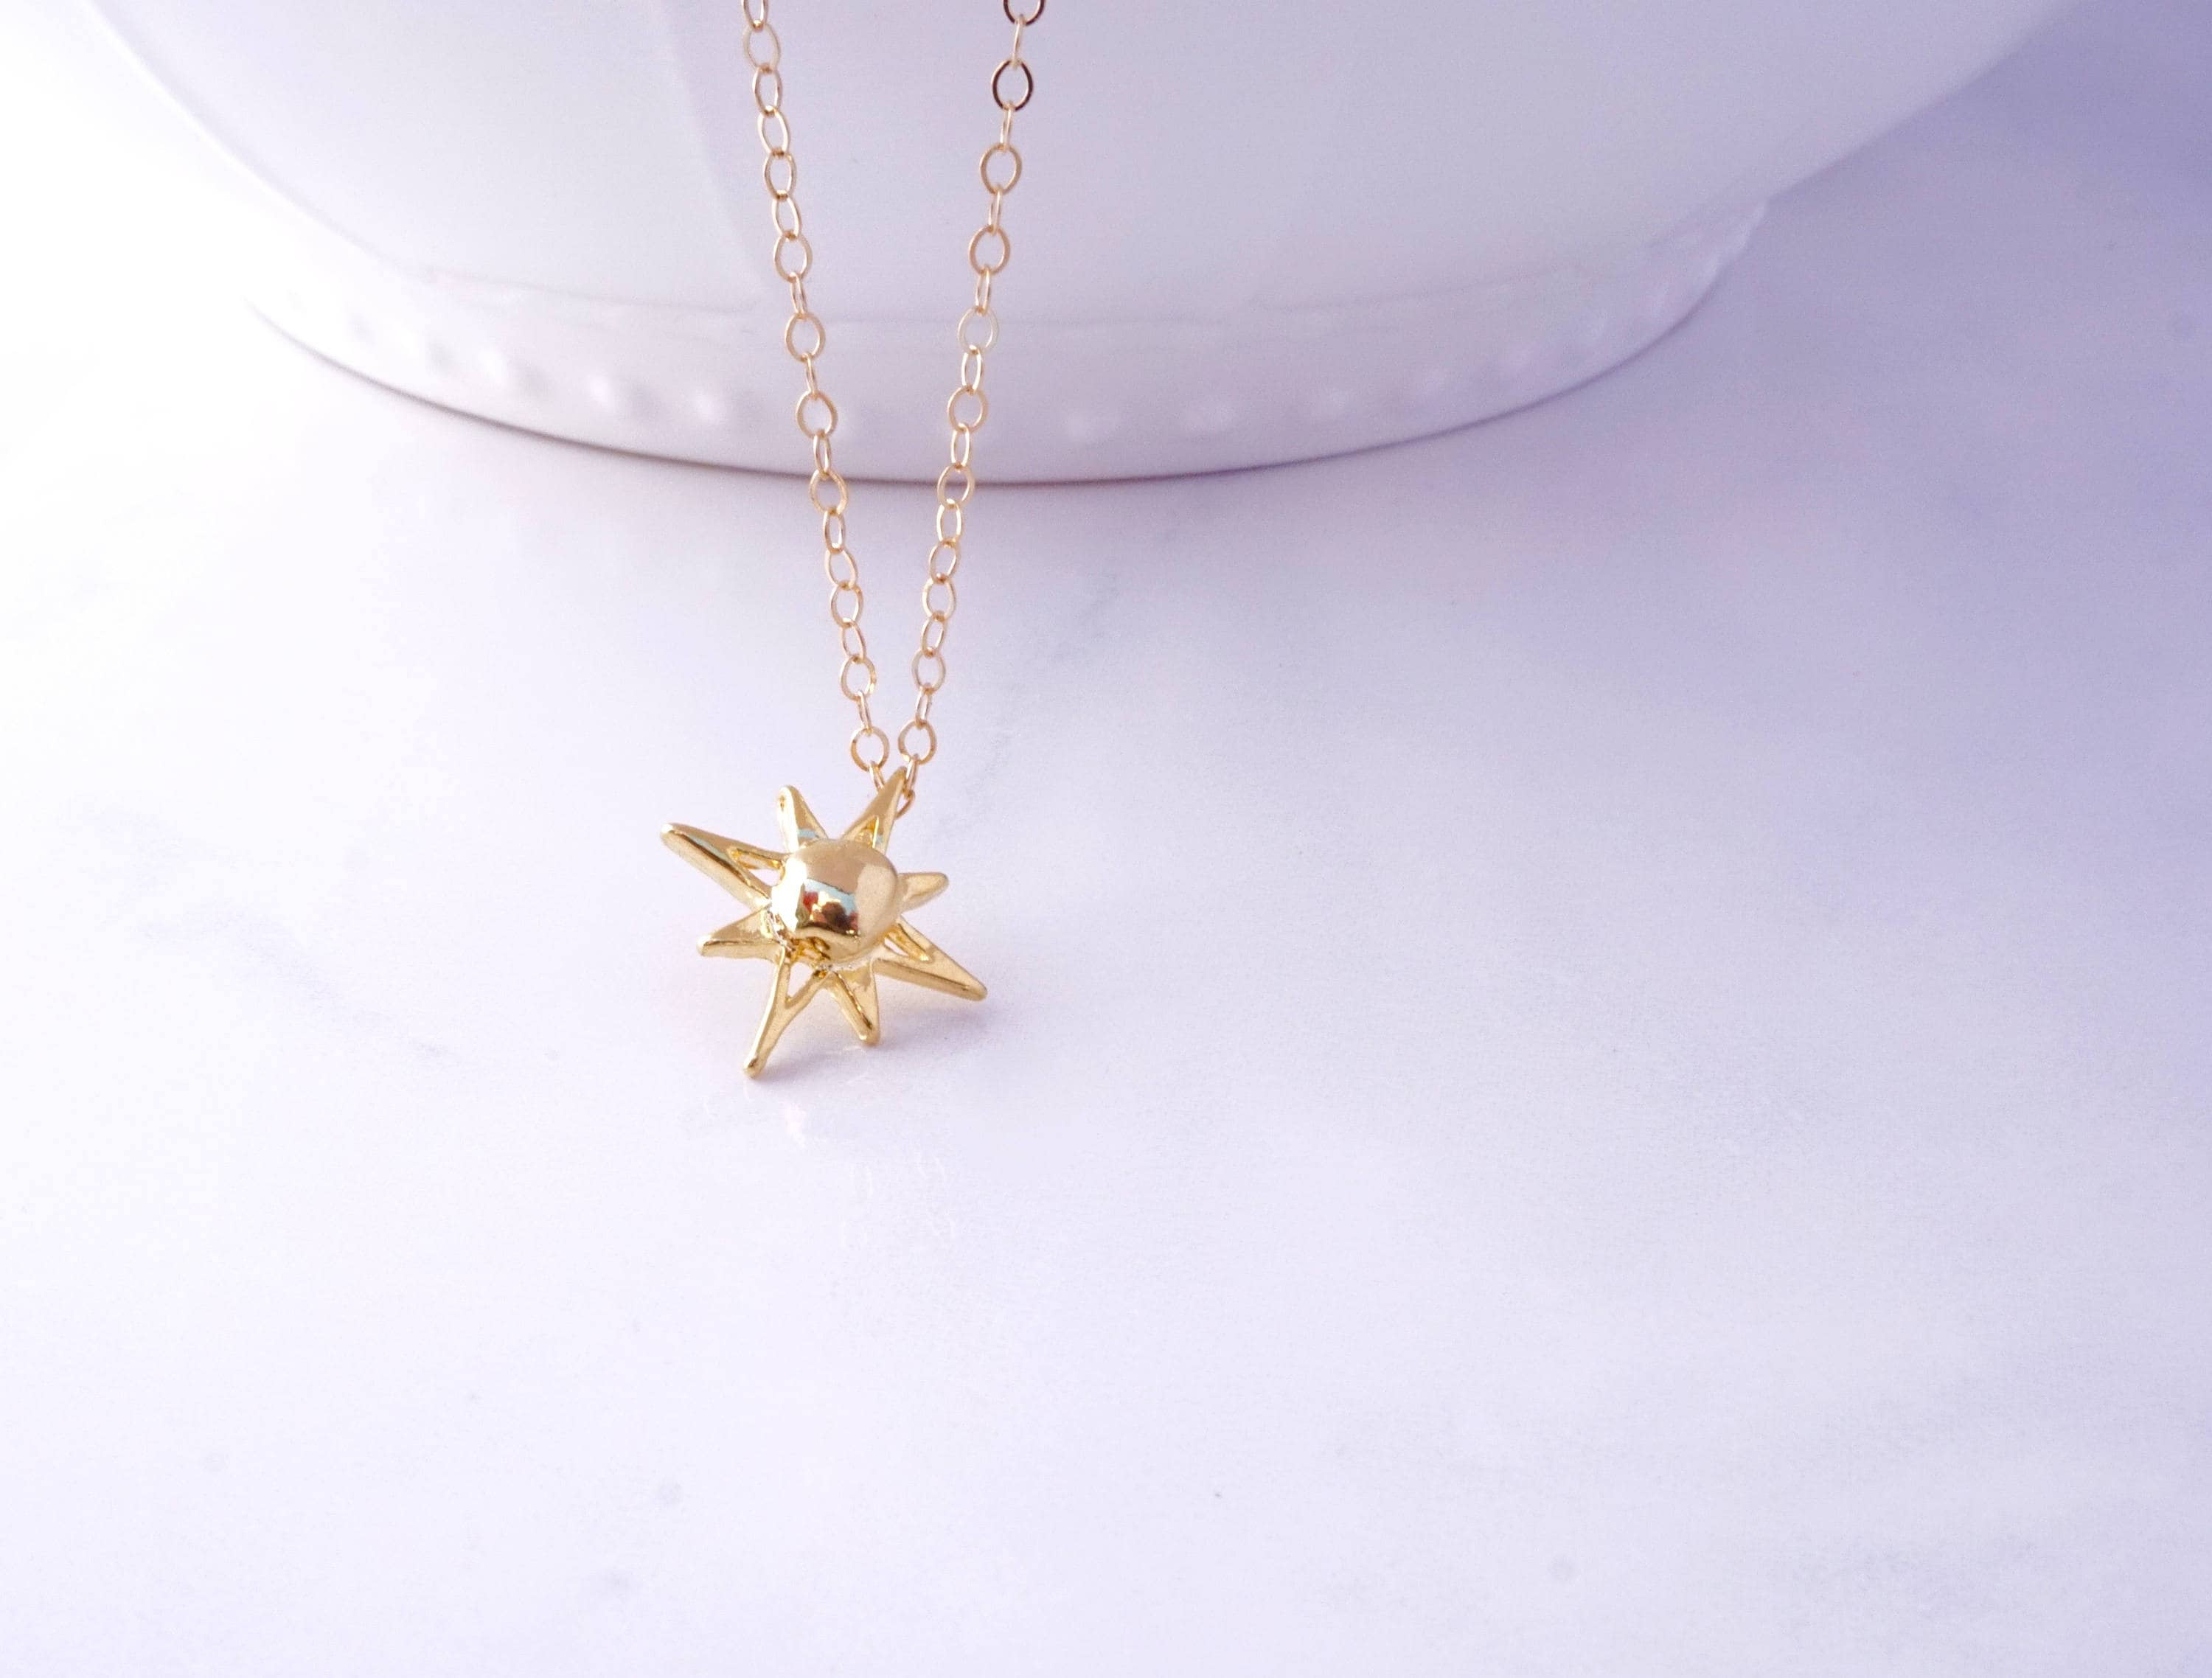 steven star g sterling products pendant silver necklace believe north